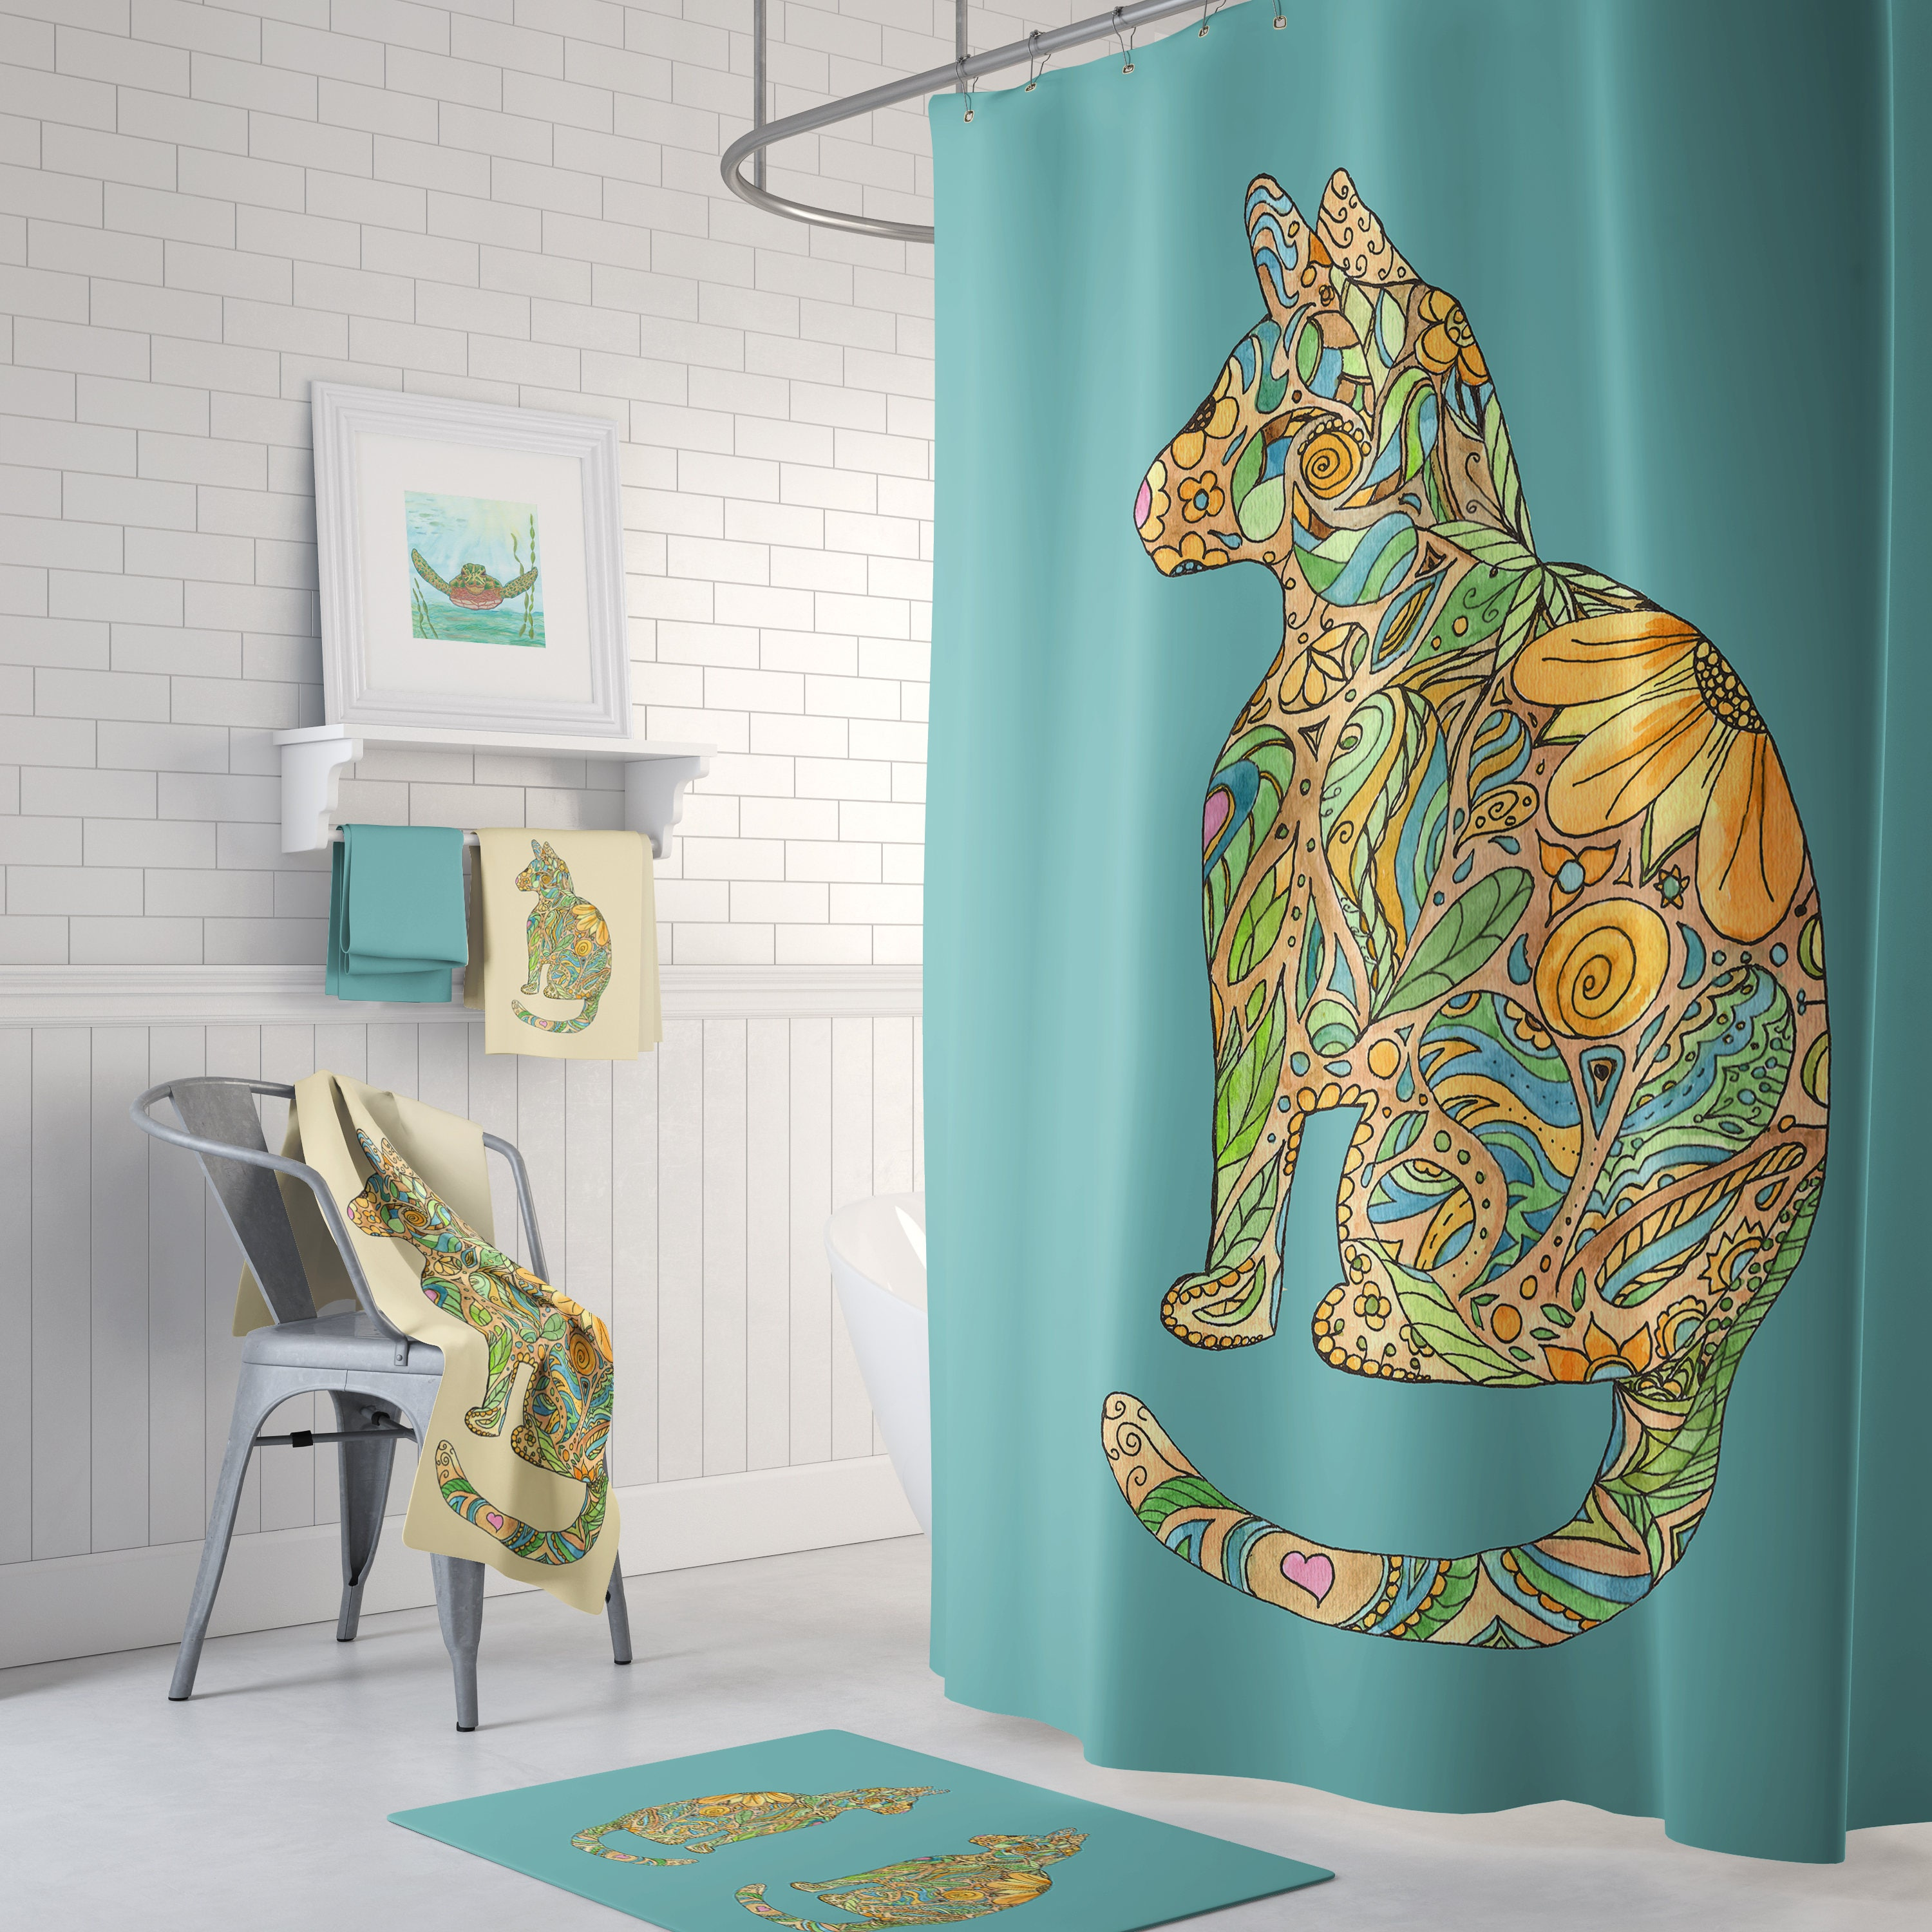 Calico Cat With Blue Shower Curtain Set Teal Blue And Gold